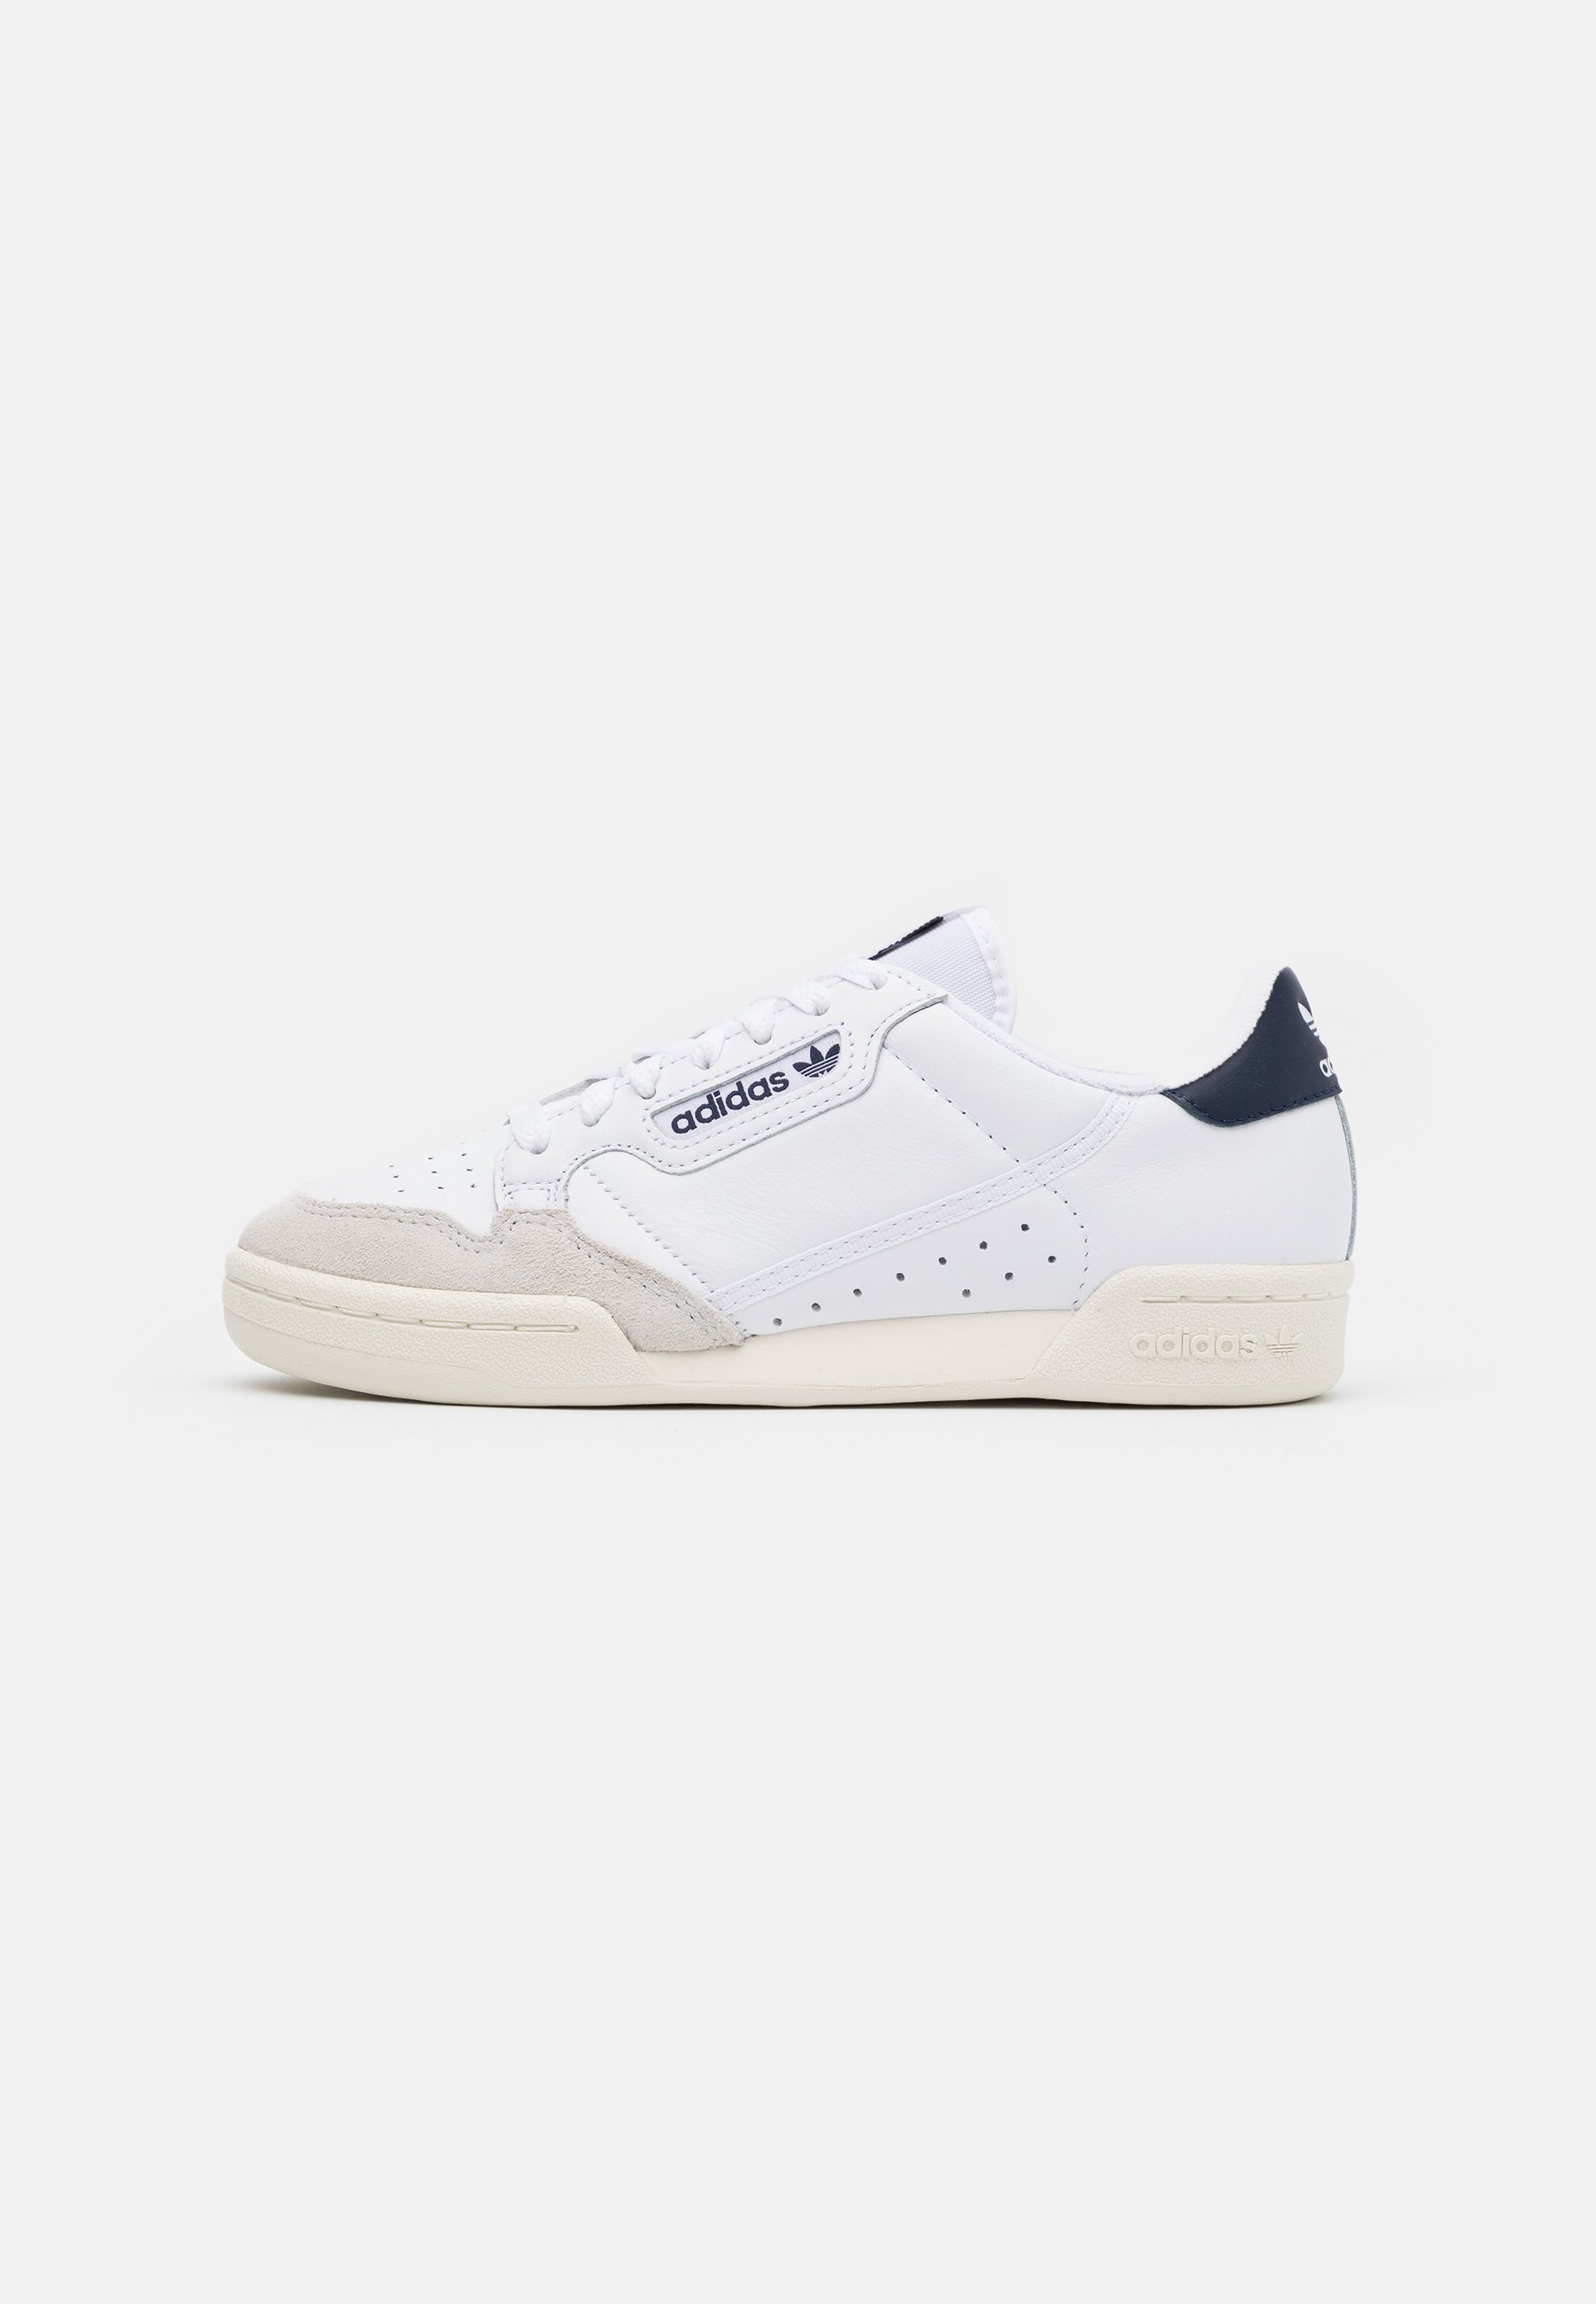 adidas Originals CONTINENTAL 80 SPORTS INSPIRED SHOES